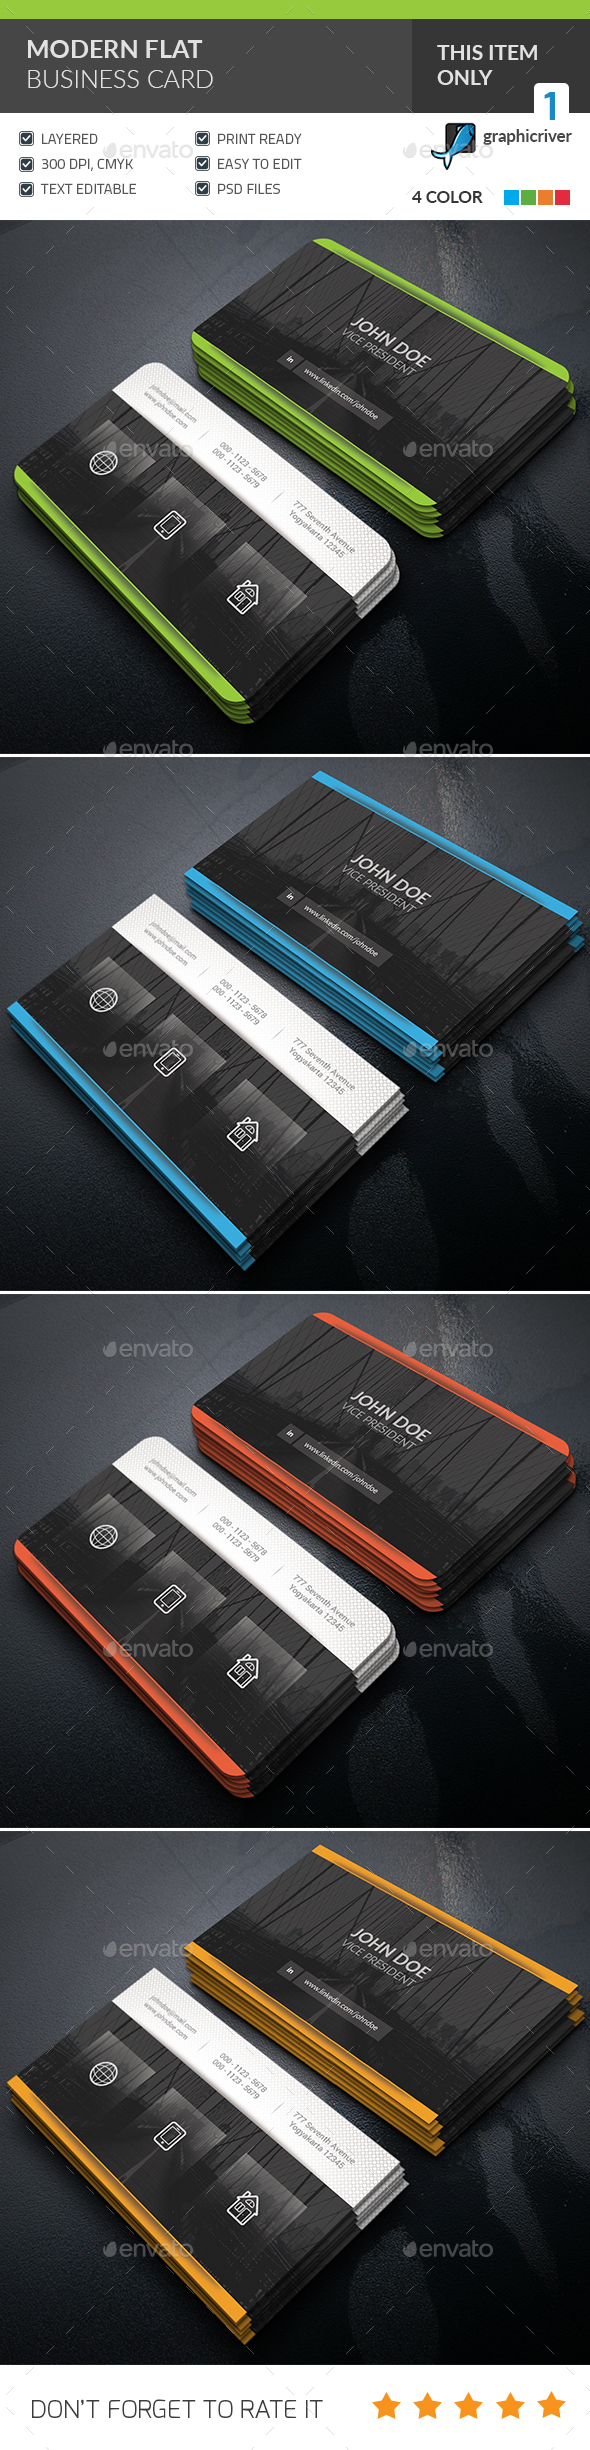 Modern Flat Business Card - Corporate Business Cards